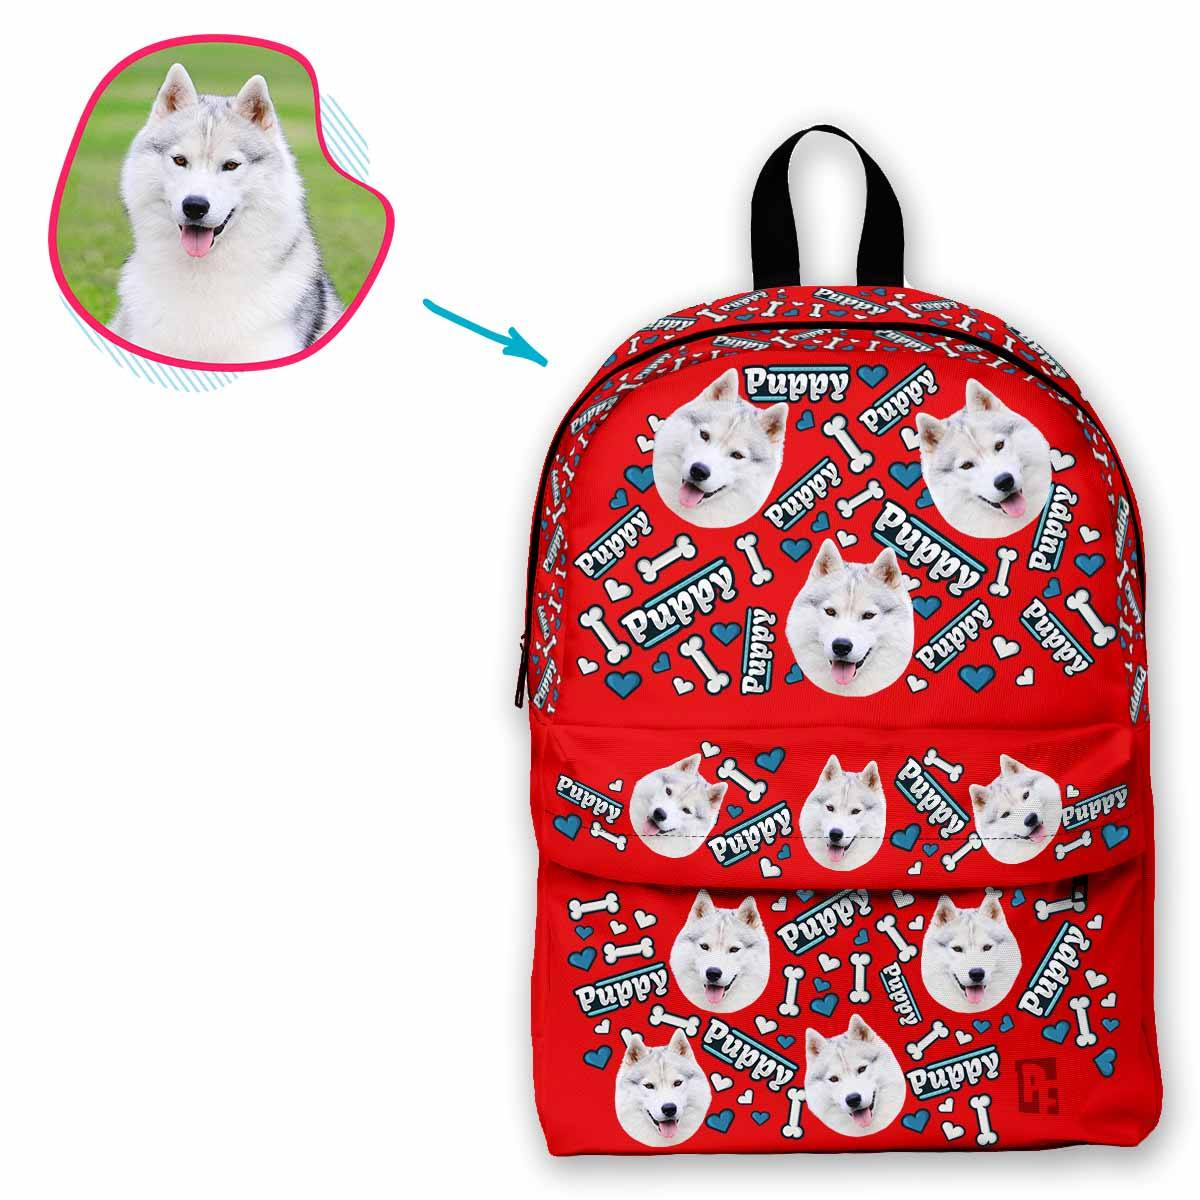 red Puppy classic backpack personalized with photo of face printed on it